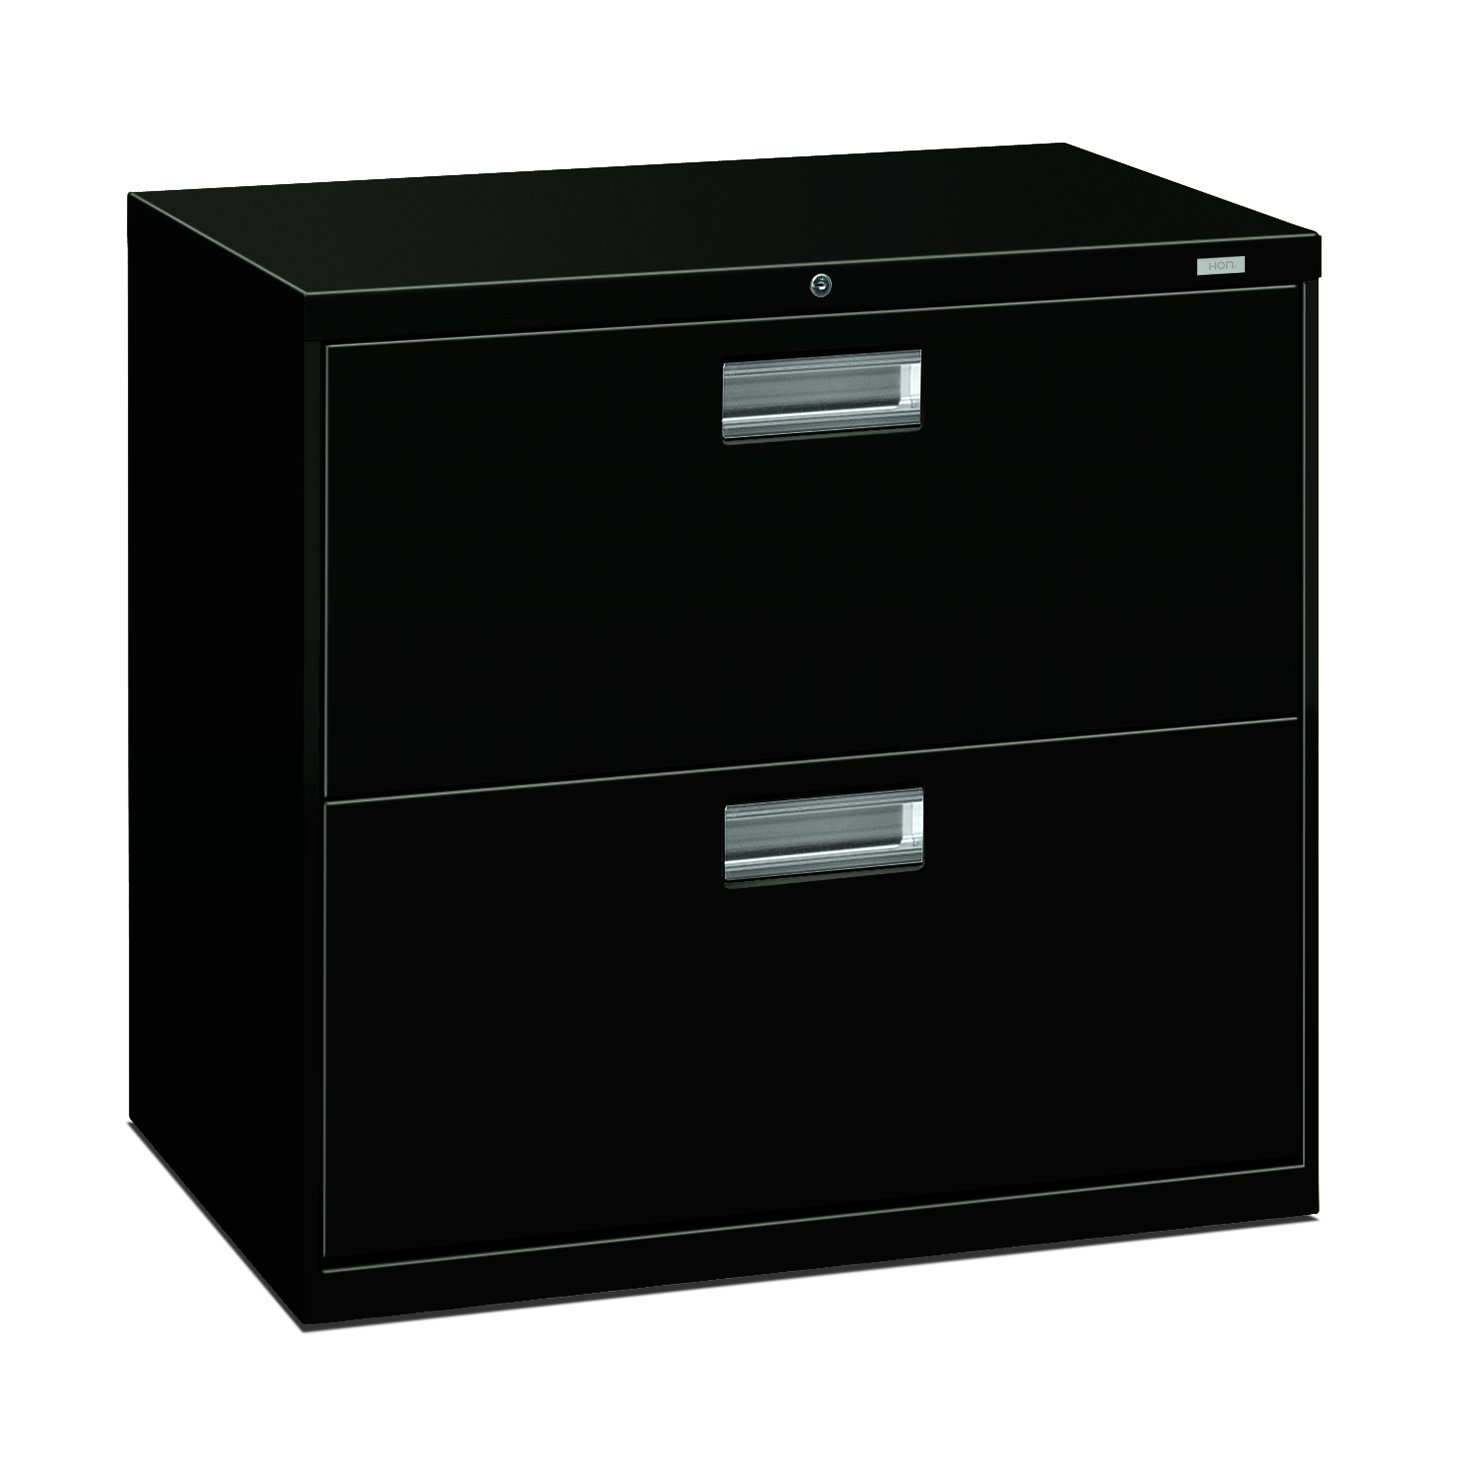 Best Lateral File Cabinet Reviews and Buying Guide 7